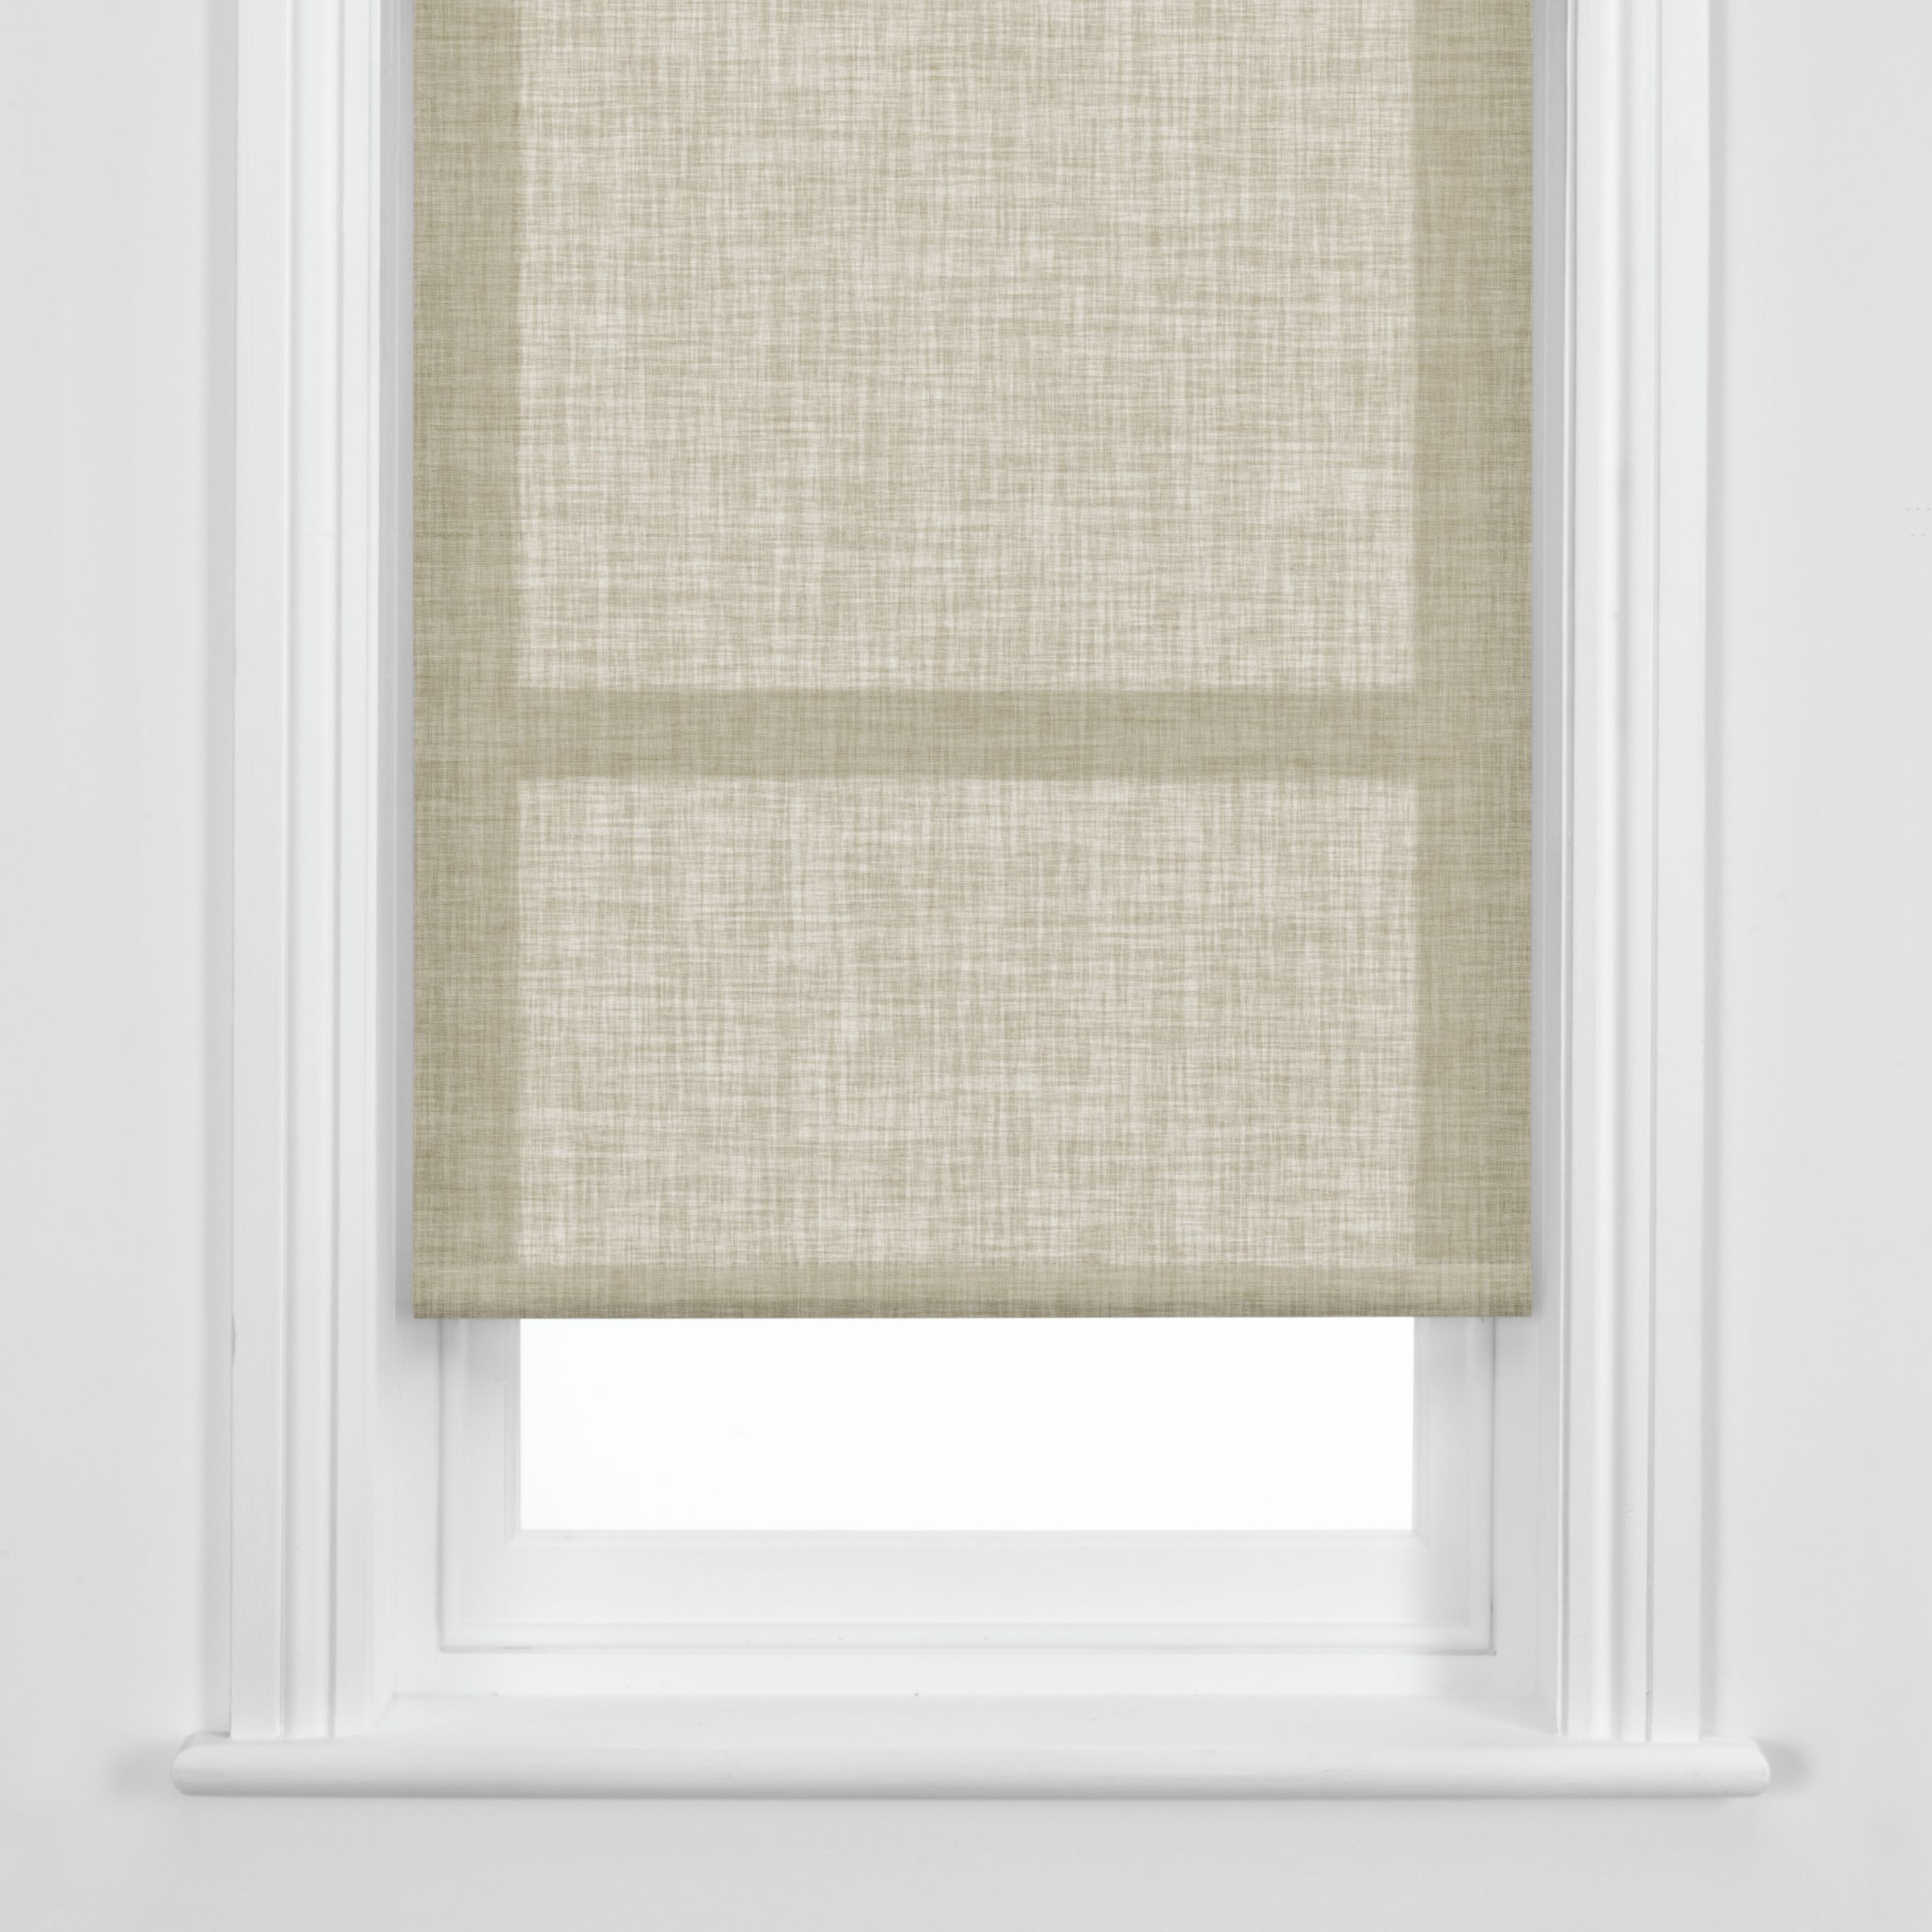 Diy Blinds Online John Lewis Linen Roller Blinds Natural Review Compare